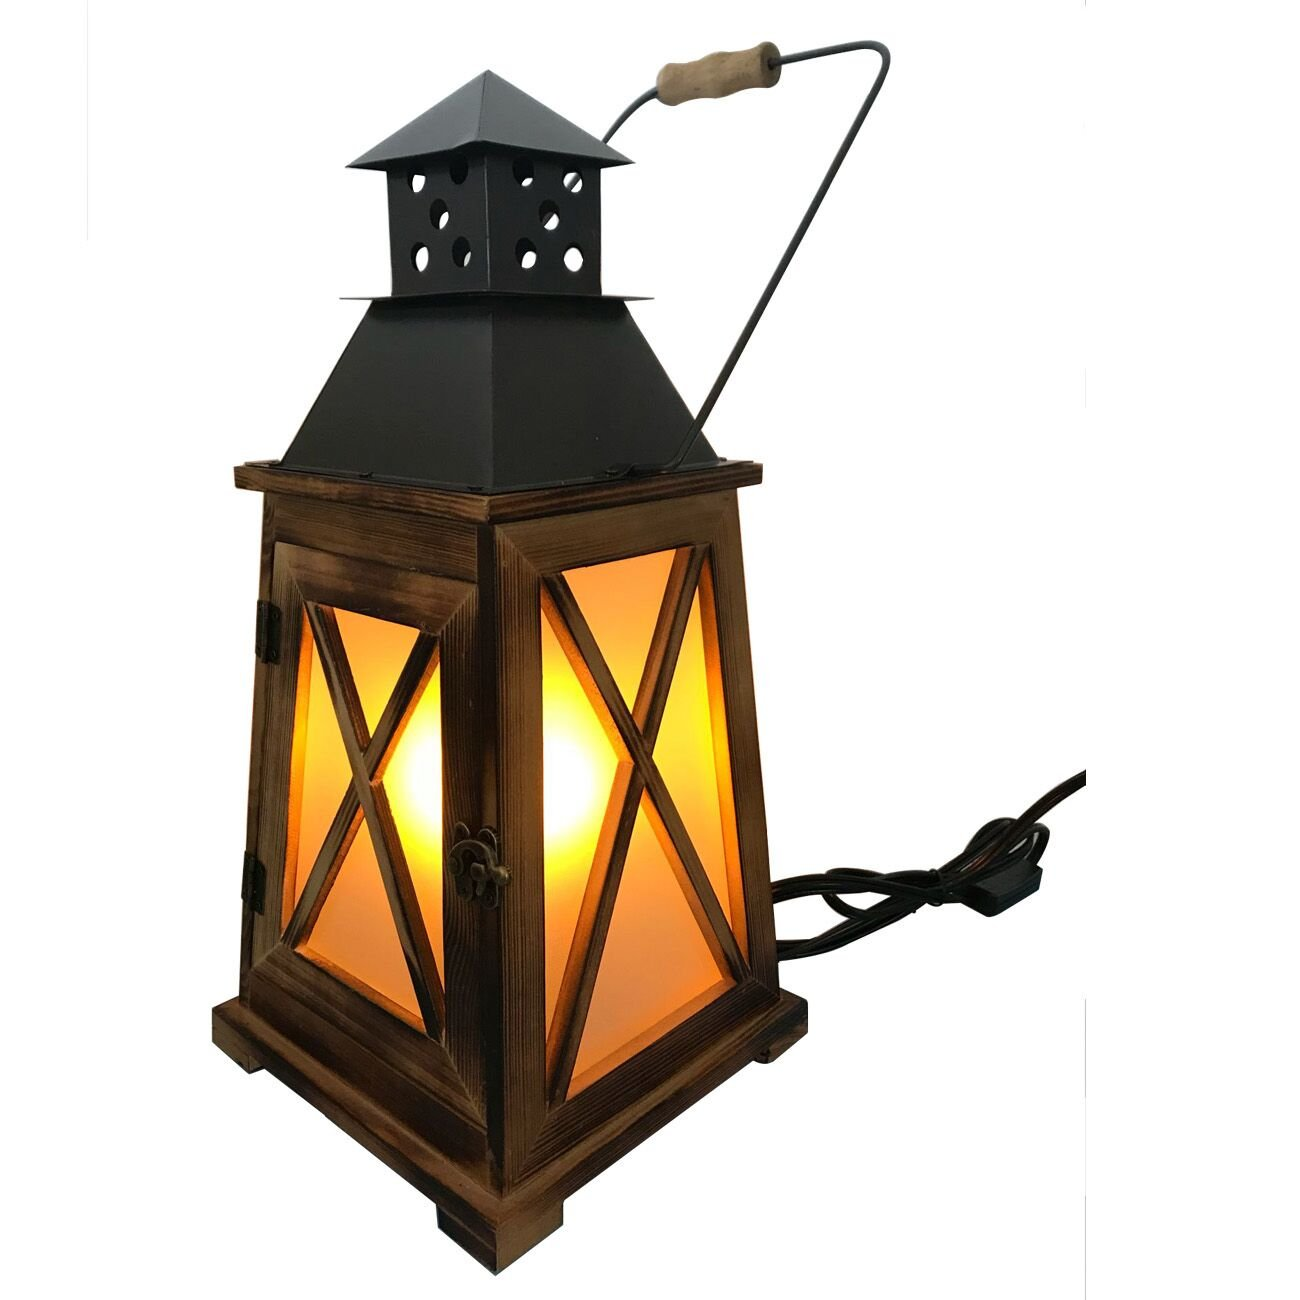 Decoluce Vintage Handmade Electric Lantern Lights-Decorative Hurricane Lamp, Ambient Flameless Candle Lanterns Lights Rustic Retro Decor Wood Antique Table Lamp (Lantern)